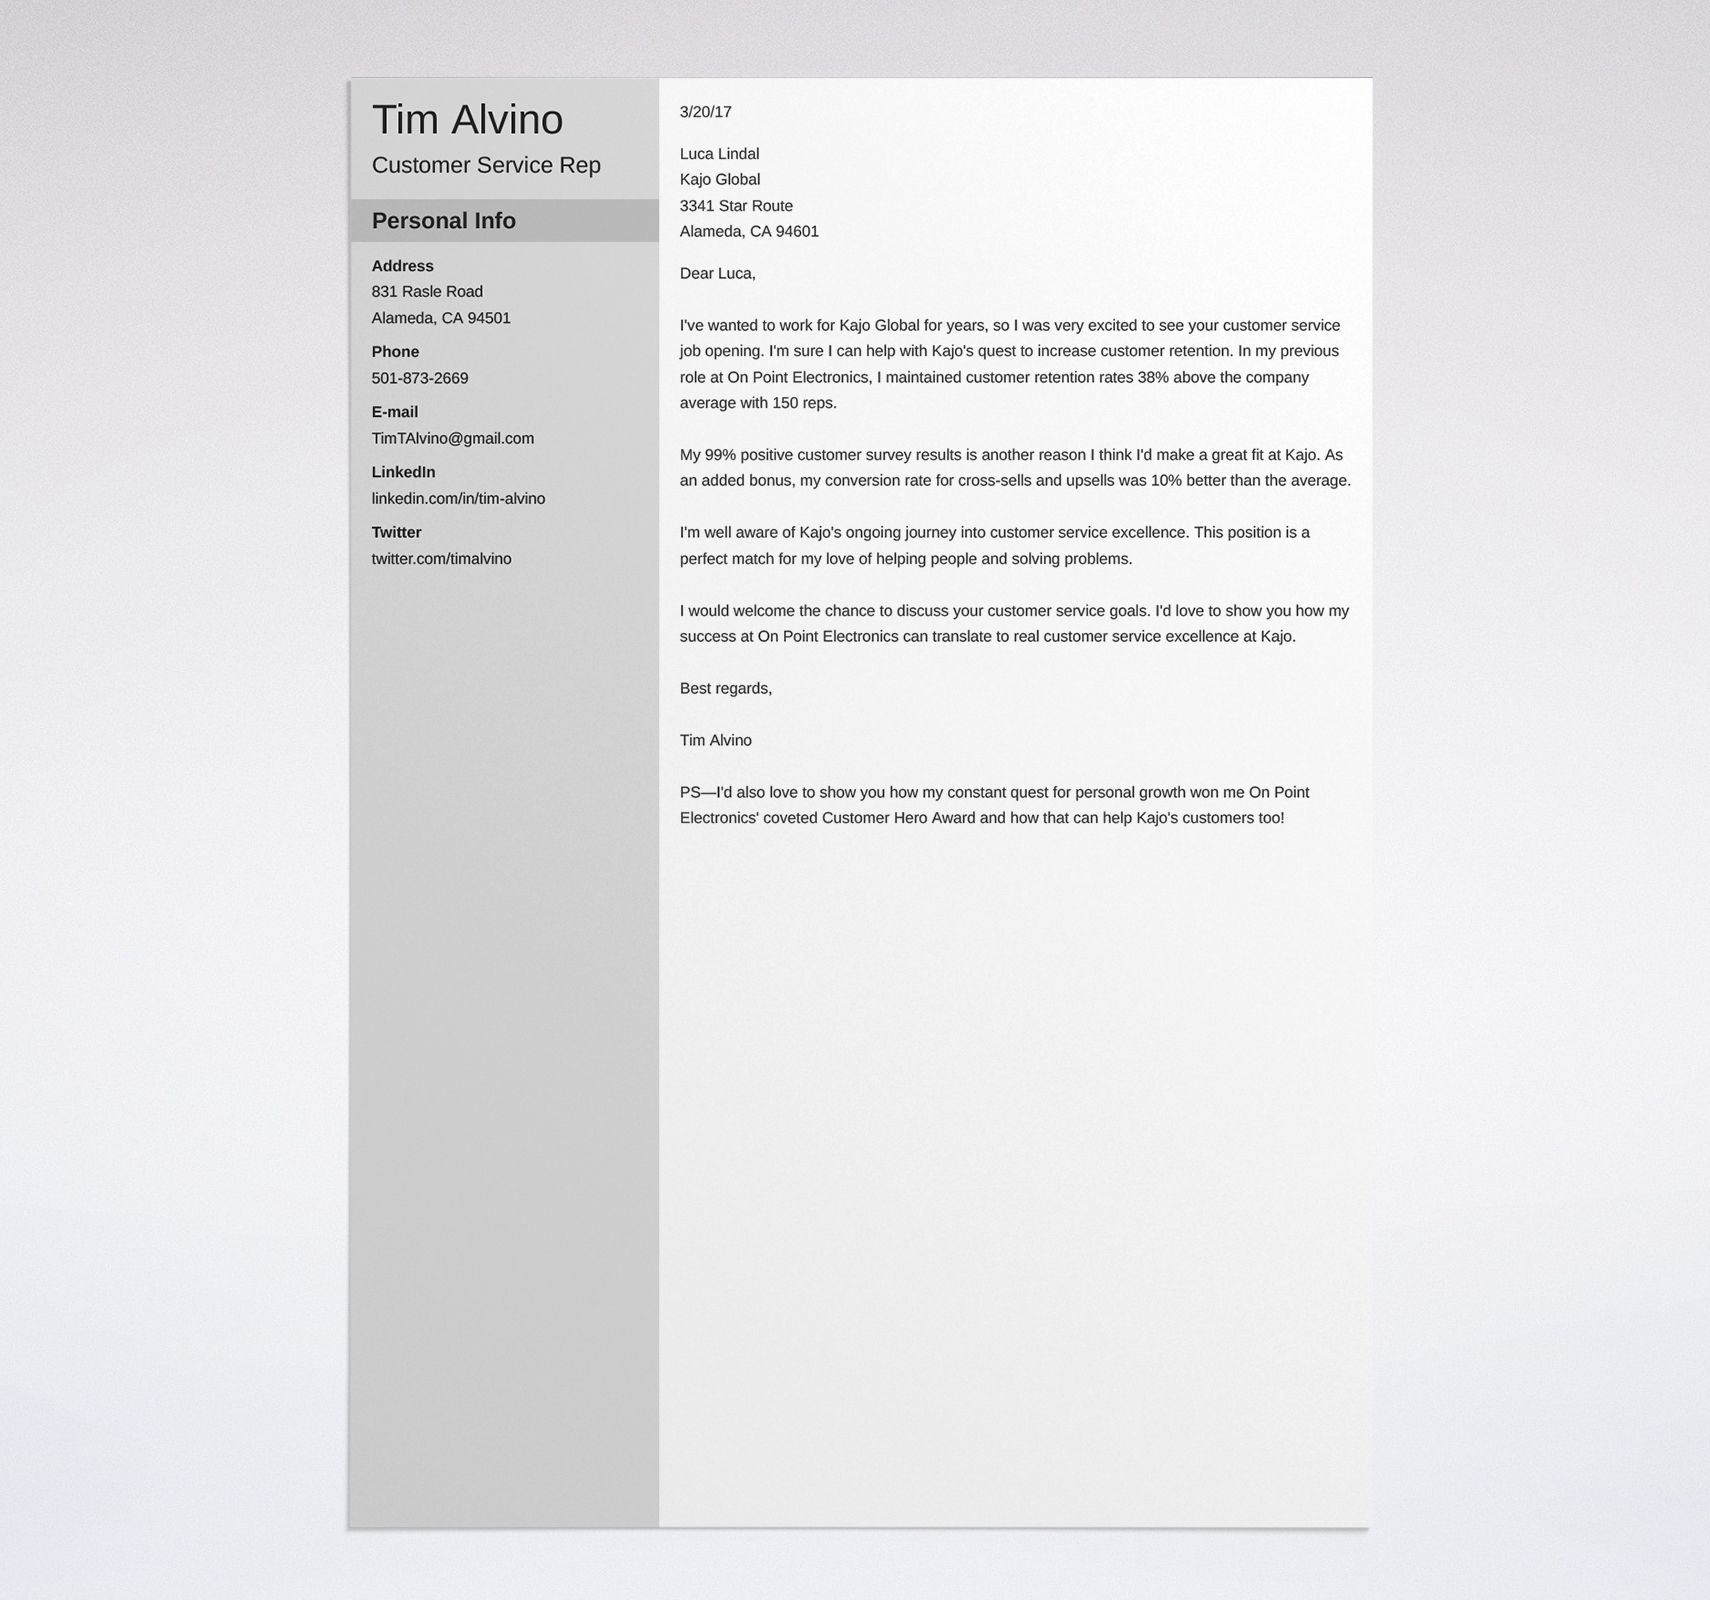 Free Cover Letter Examples For Jobs: 10+ Best Samples